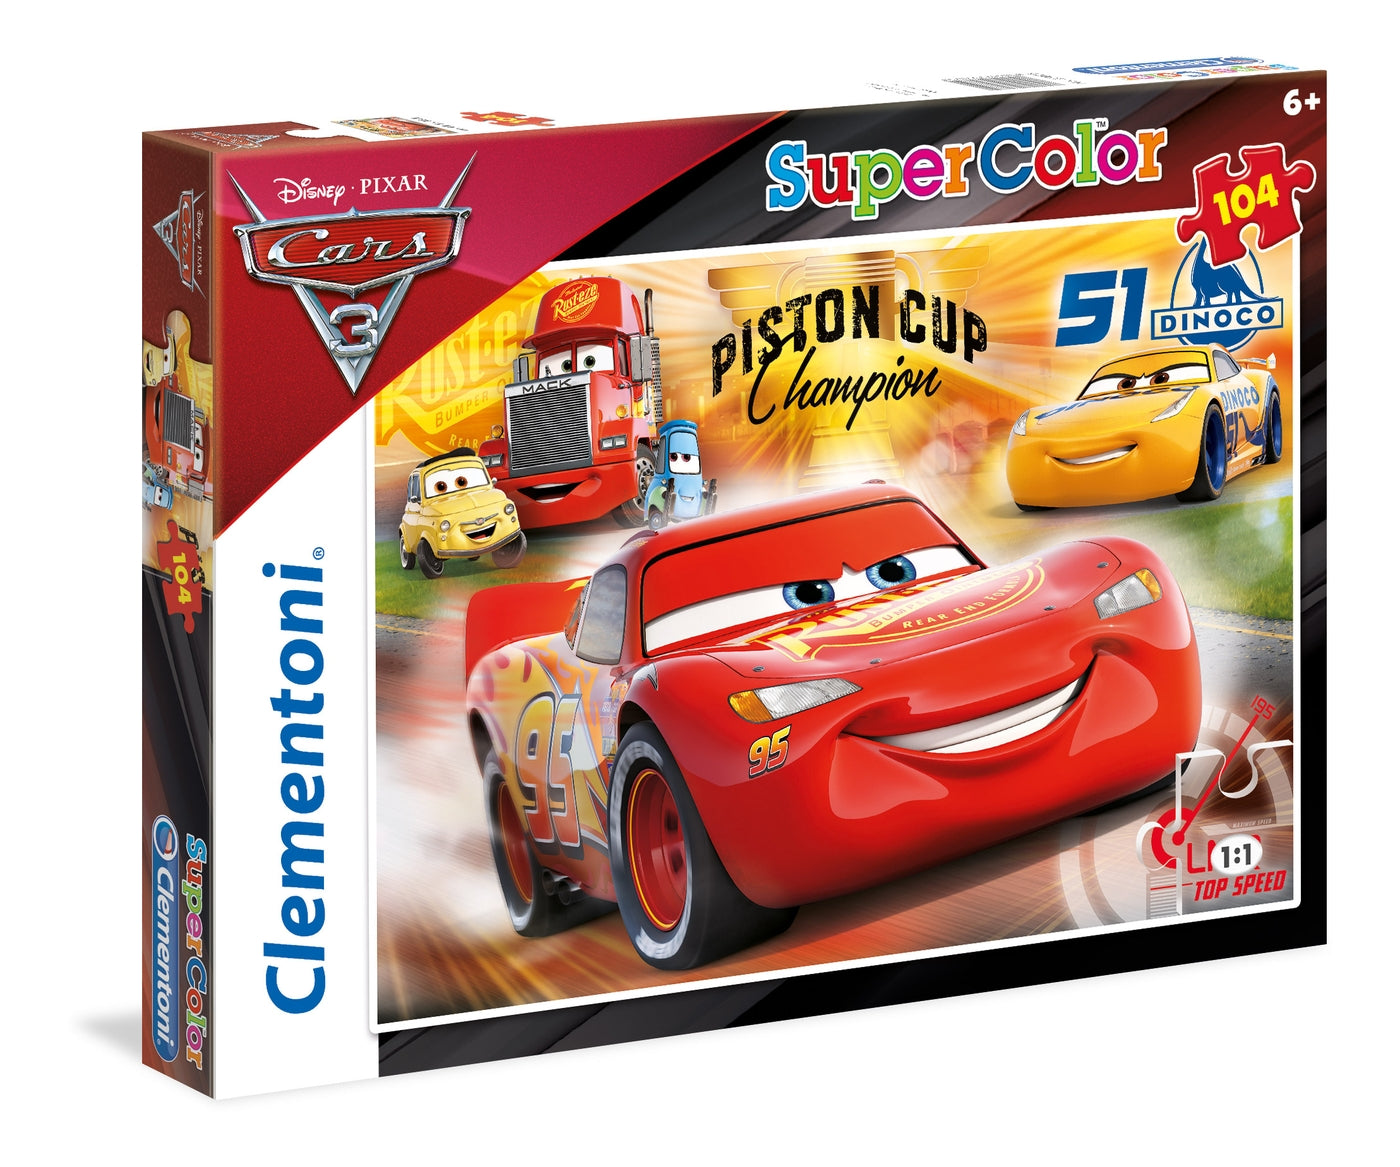 ΠΑΖΛ CLEMENTONI 104 S.C. Cars: Racing Hero (1210-27075)